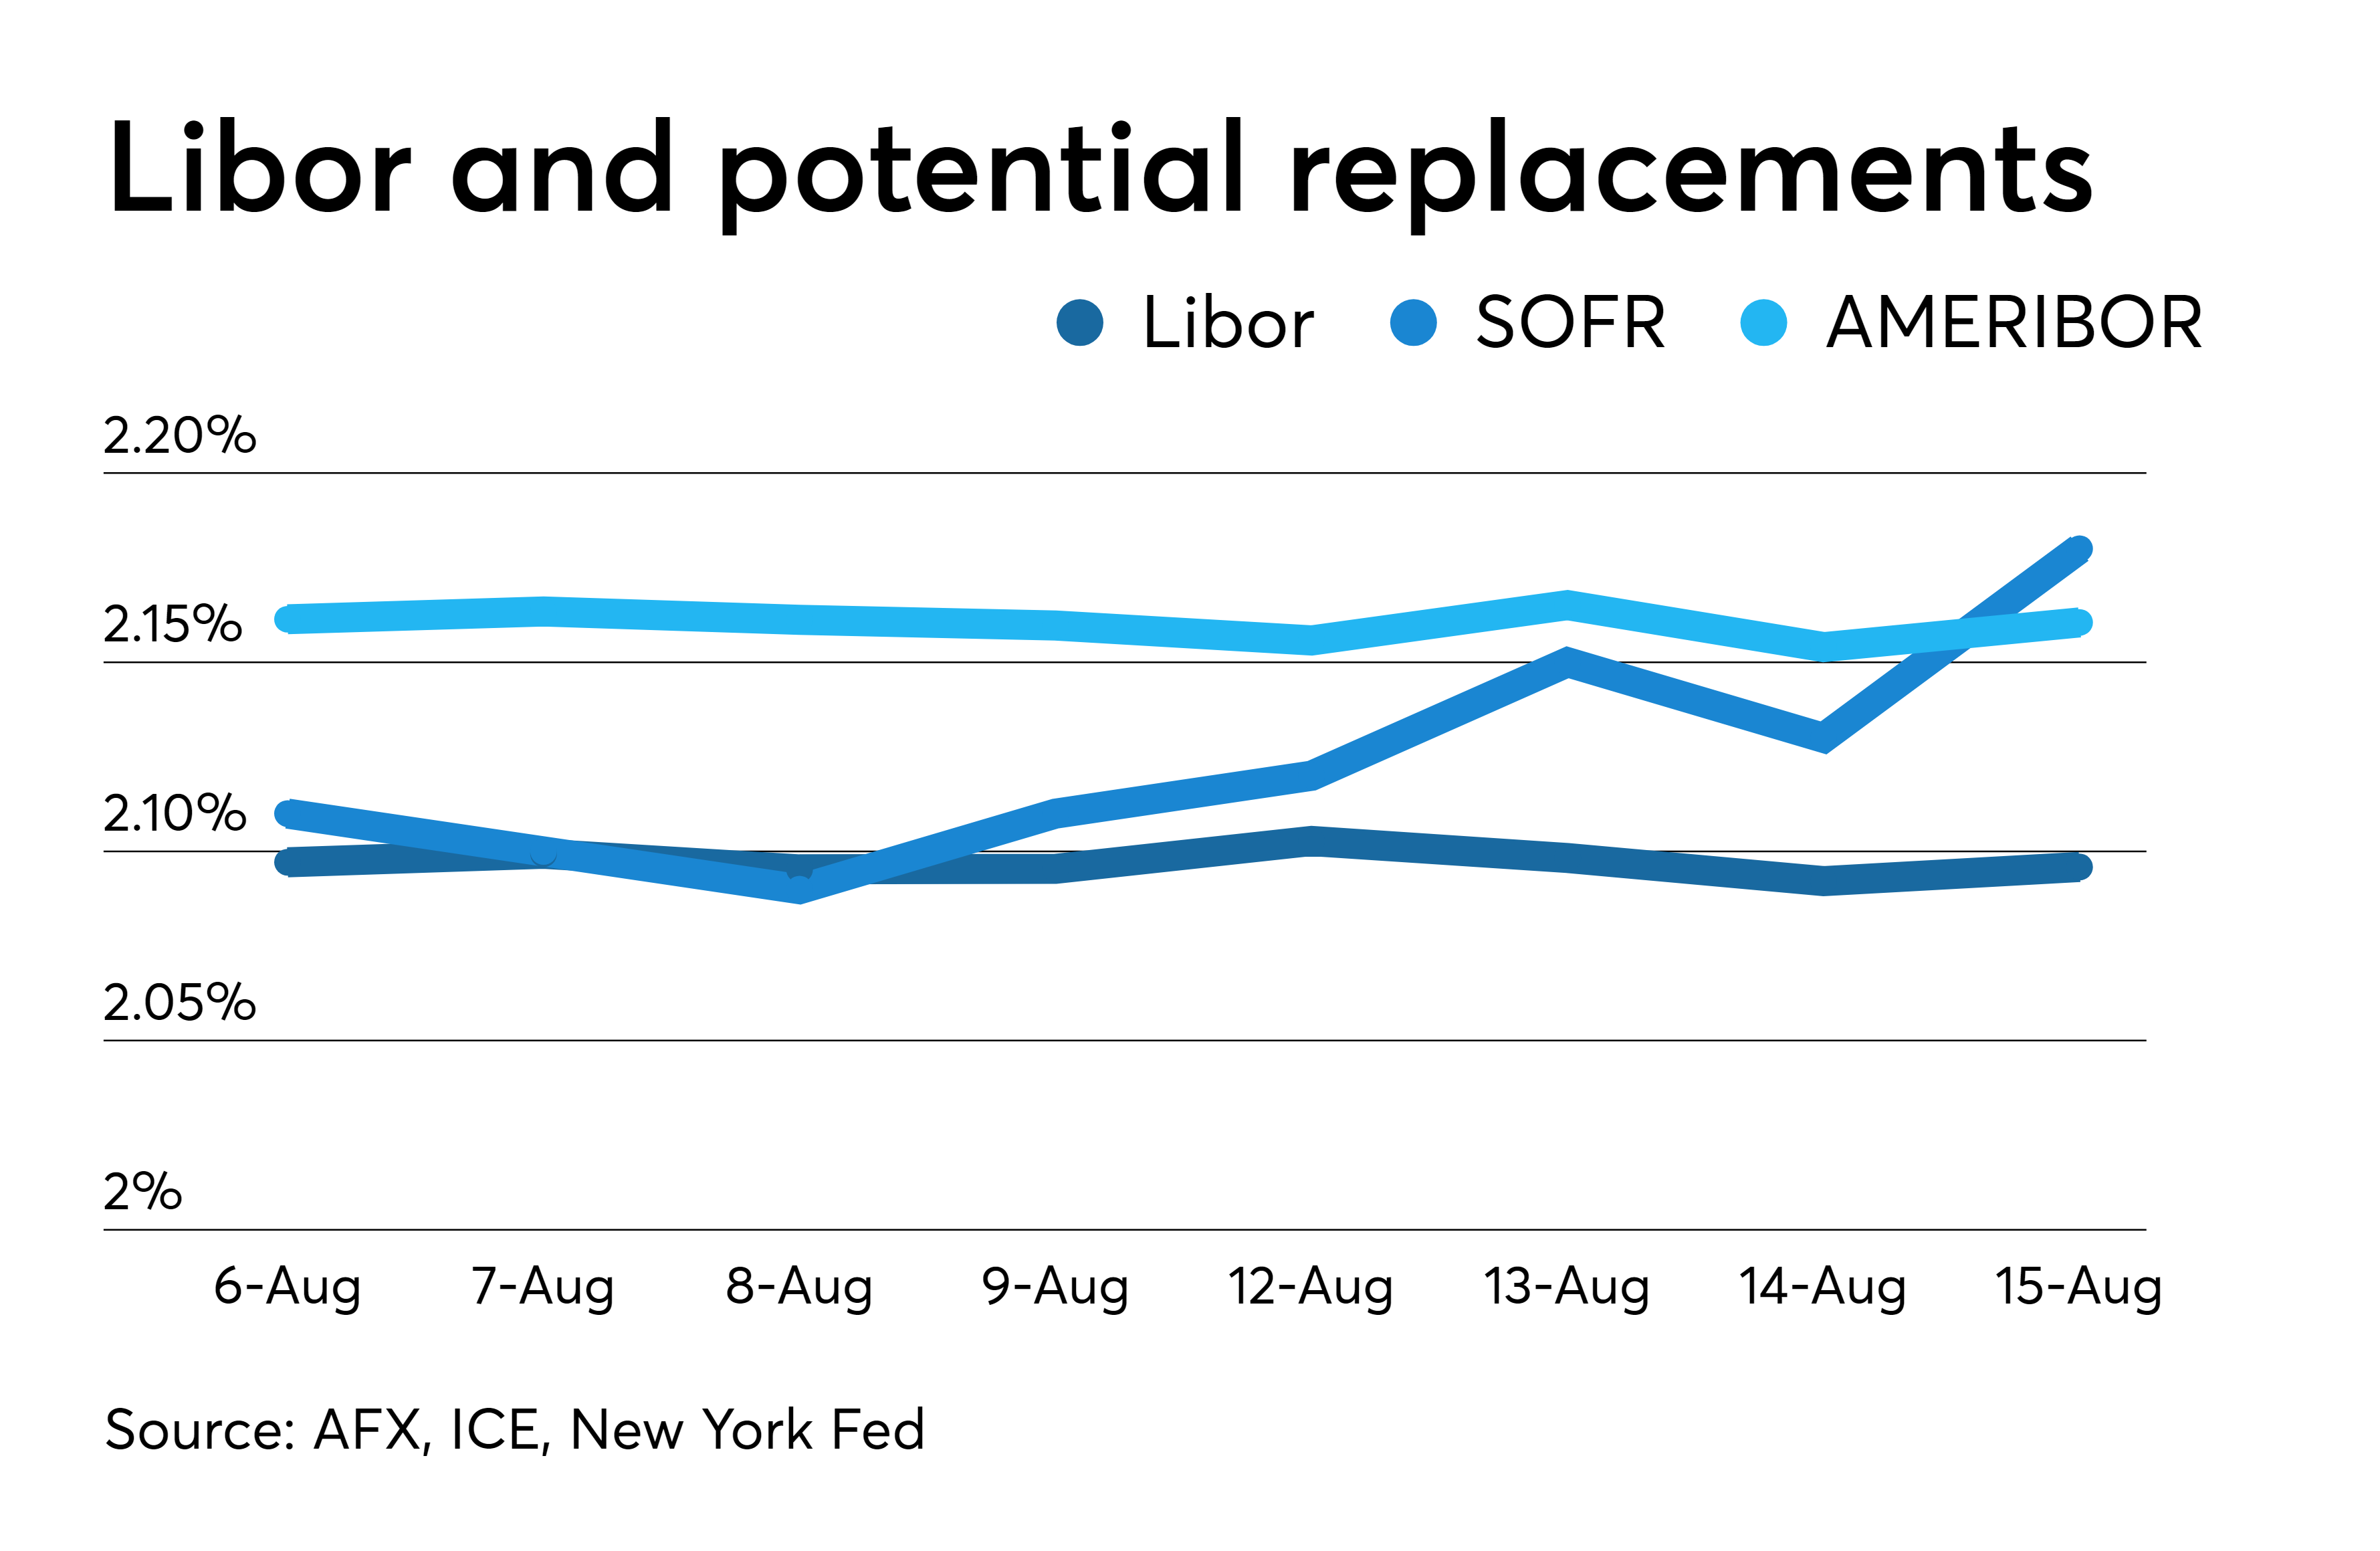 Libor and its possible replacements for 2019: AMERIBOR, supported by Ethereum remained as a strong competitor of SOFR. Source: AFX